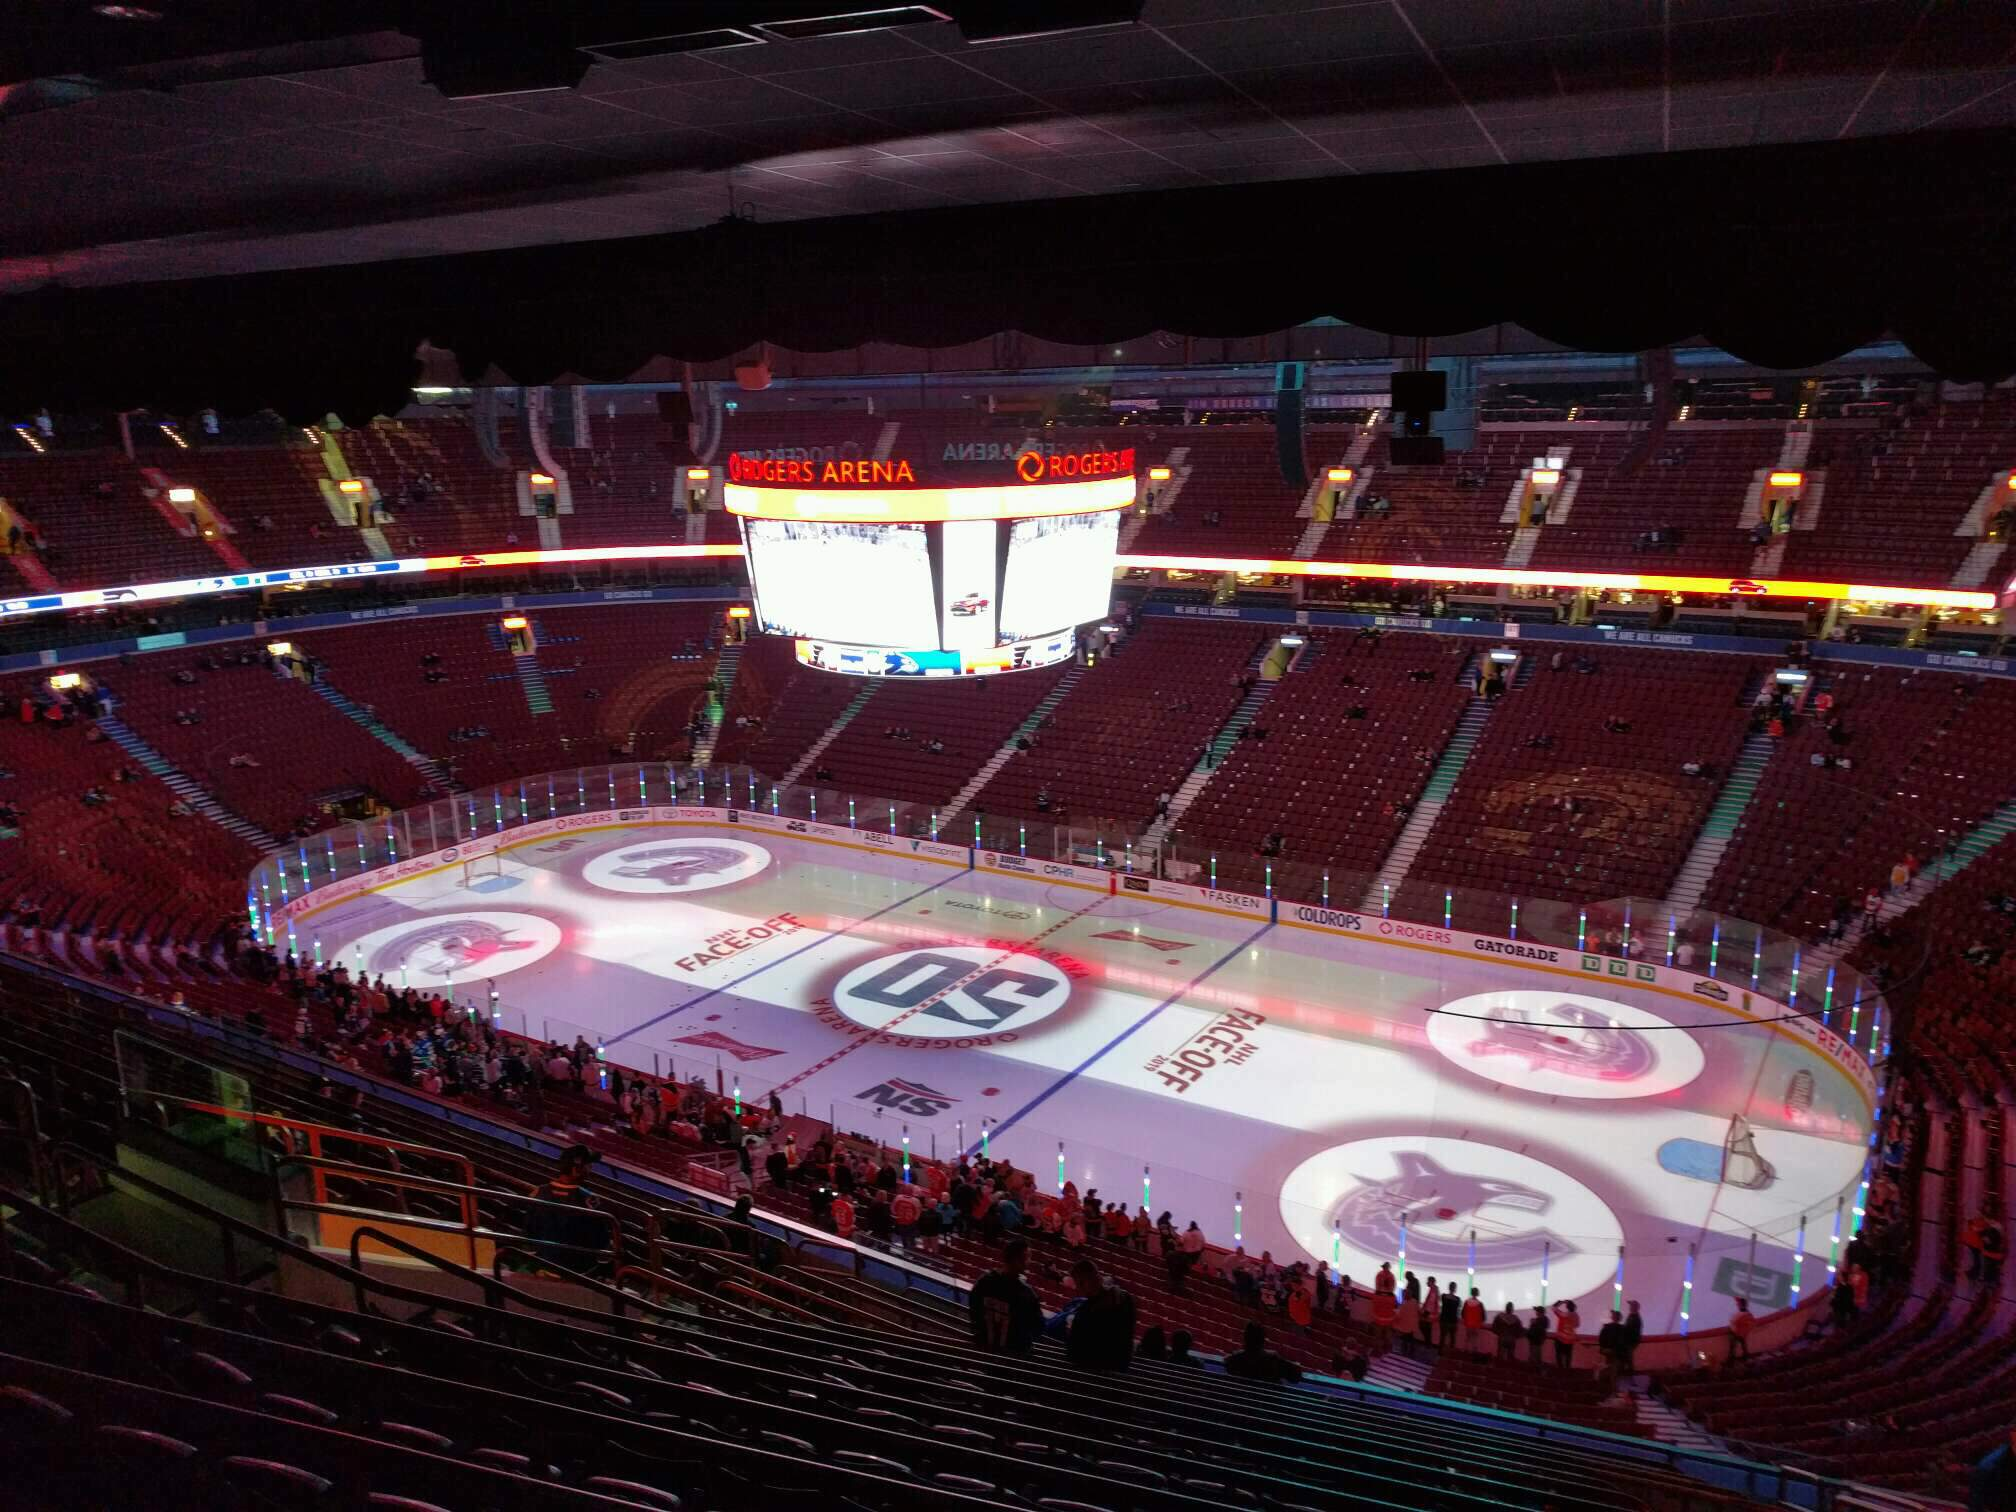 Rogers Arena Section 320 Row 15 Seat 109